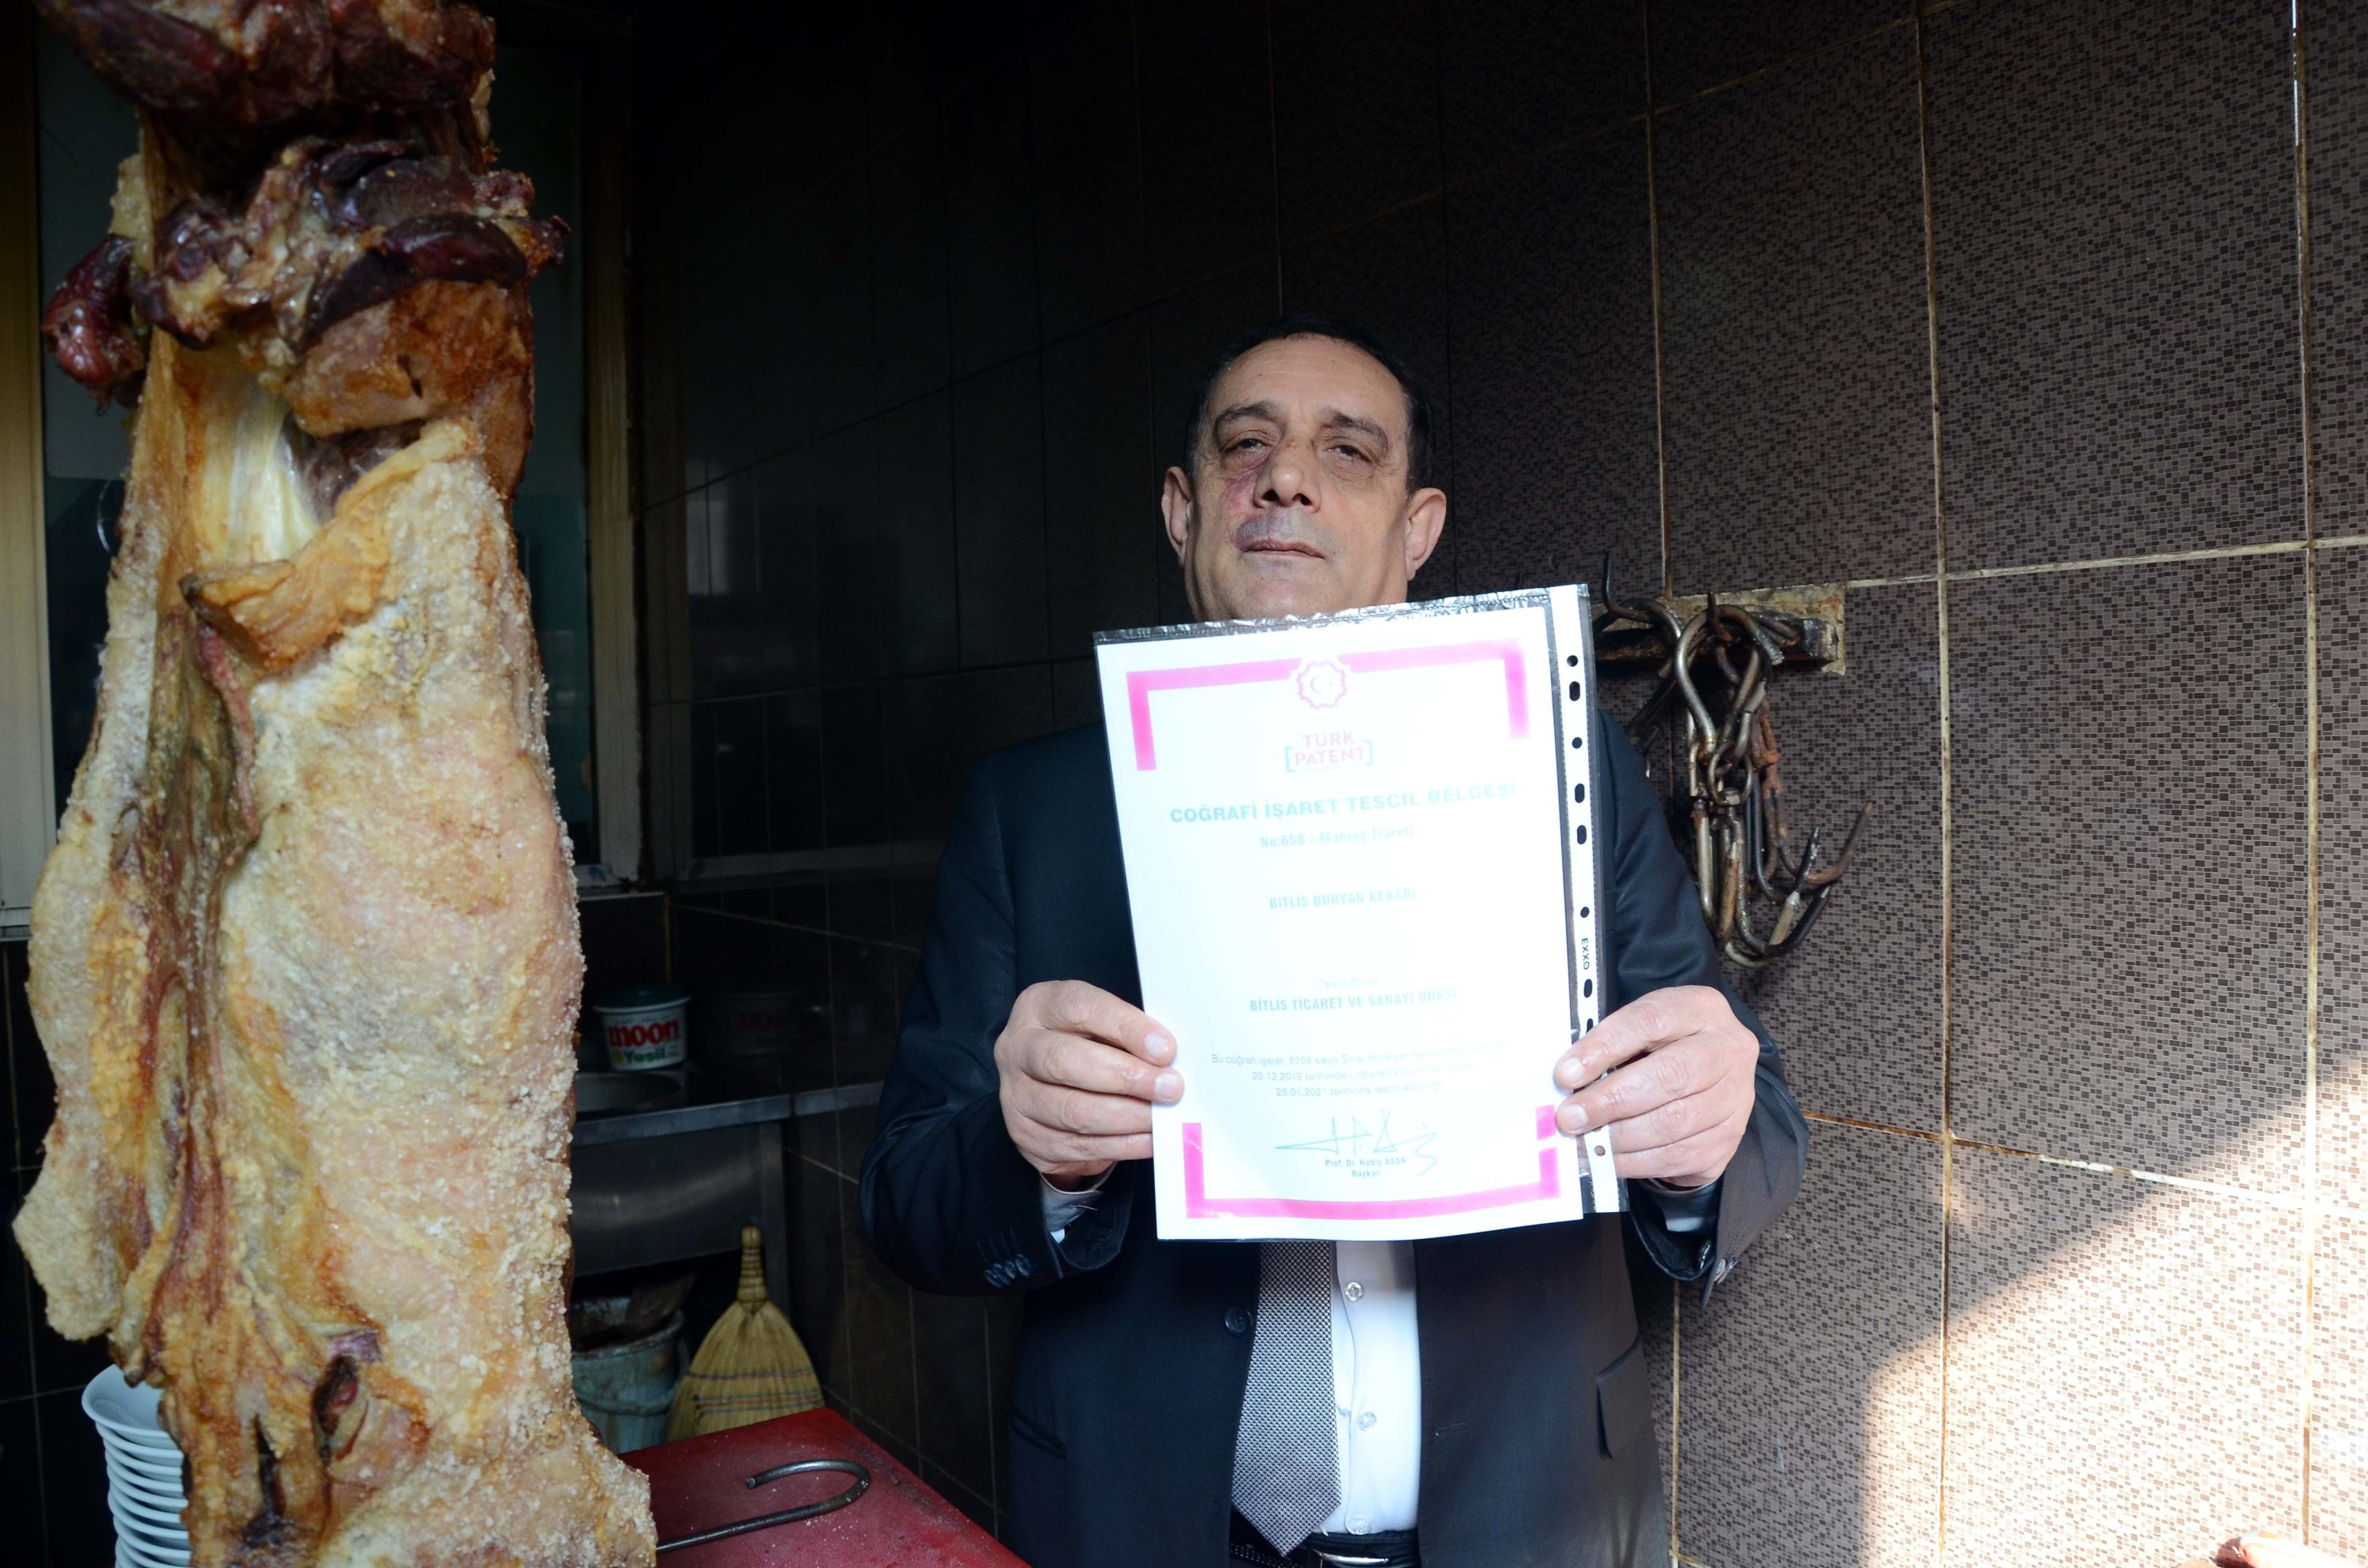 The head of the Bitlis Chamber of Commerce and Industry (TSO) Davut Tezcan poses with the geographical indication certificate of the büryan kebab in Bitlis, southeastern turkey, March 4, 2021. (AA photo)